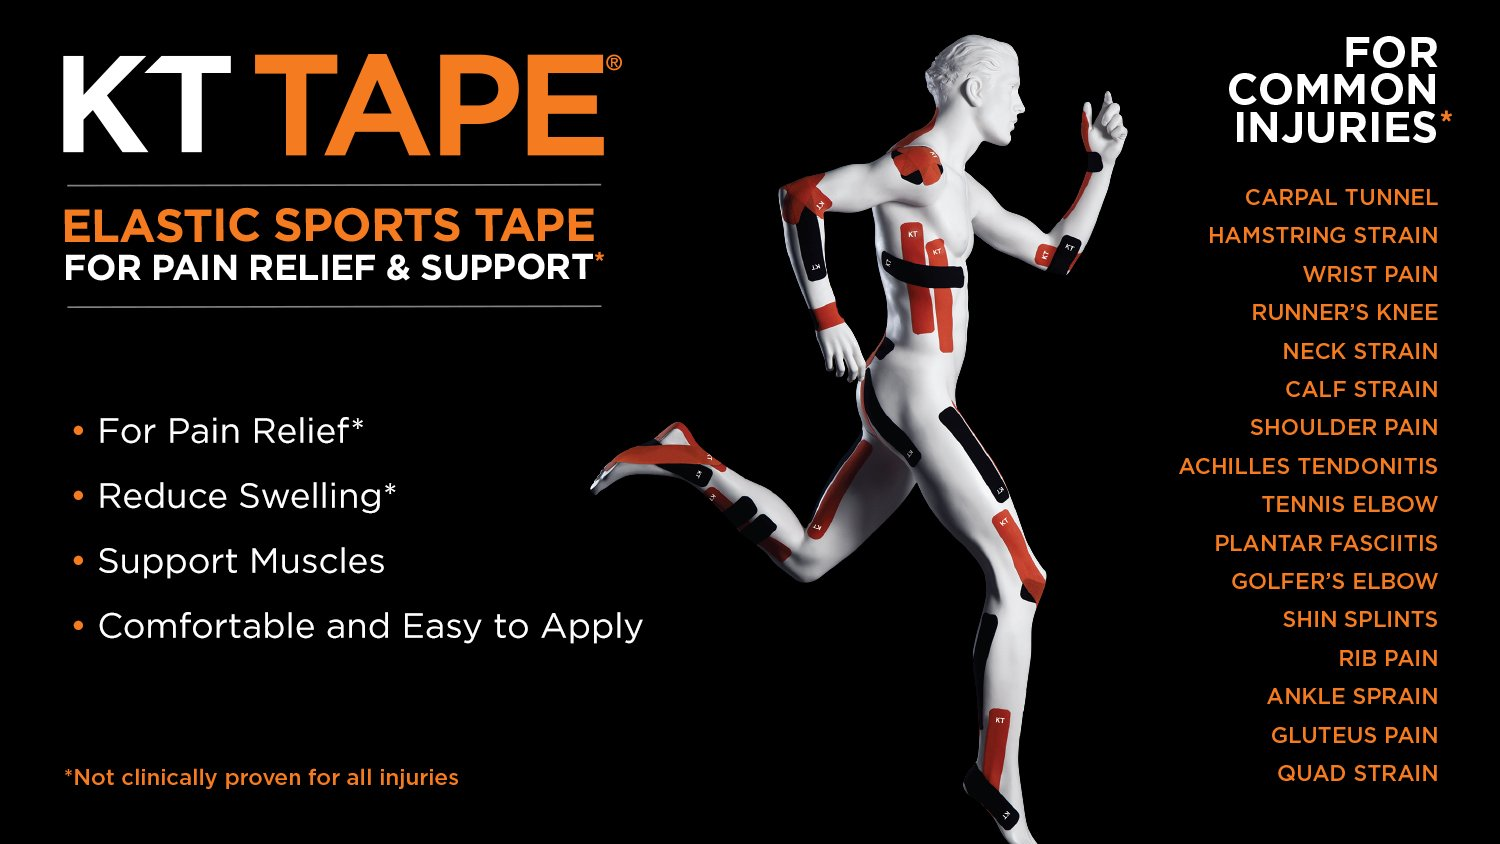 KT Tape PRO Synthetic Kinesiology Sports Tape, Water Resistant and Breathable, 20 Precut 10 Inch Strips, Team USA Olympic Edition, Black (Packaging May Vary) by KT Tape (Image #7)